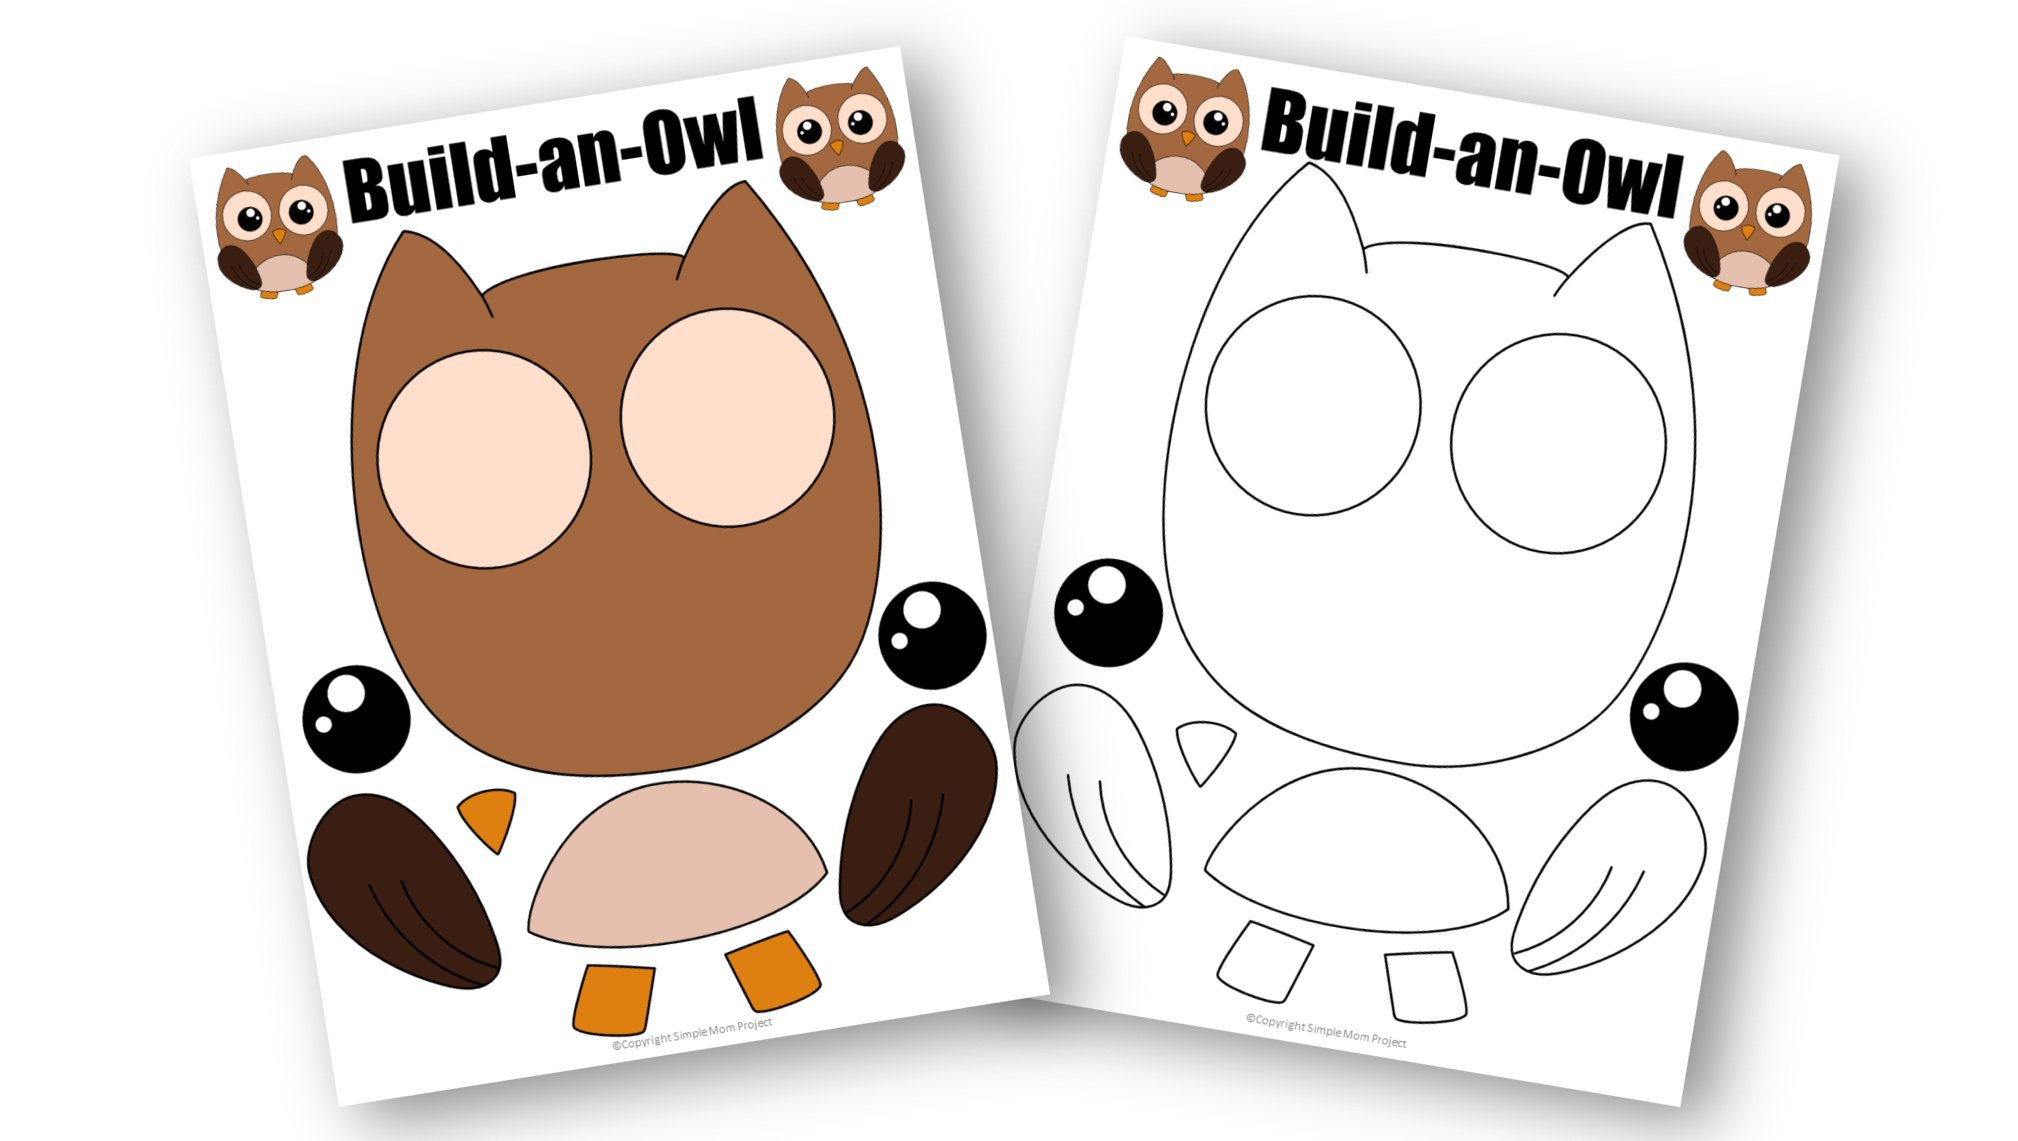 Free Printable Cut and Paste Owl Craft for Kids - Simple ...